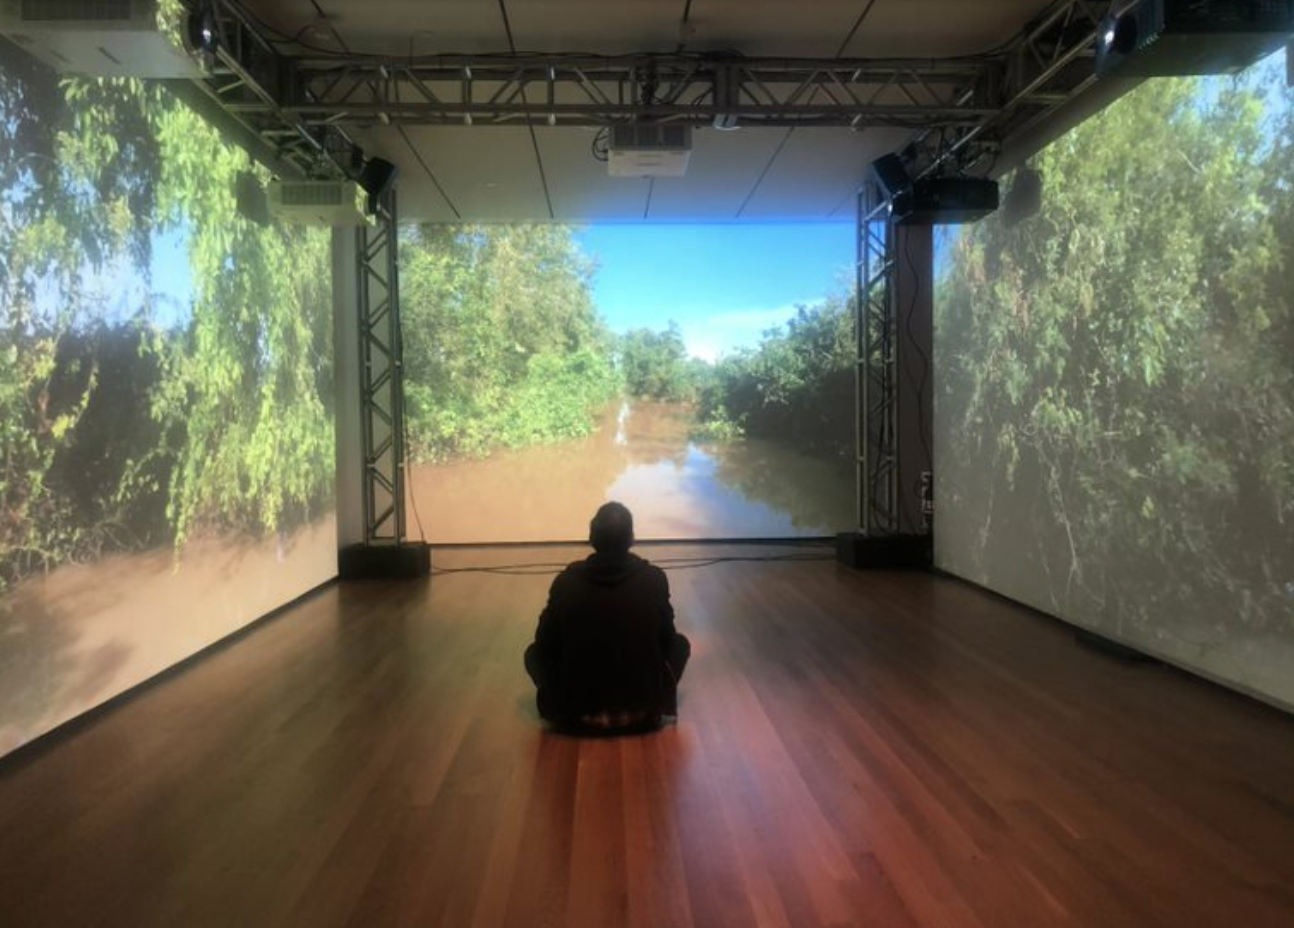 person sitting in room with projected walls